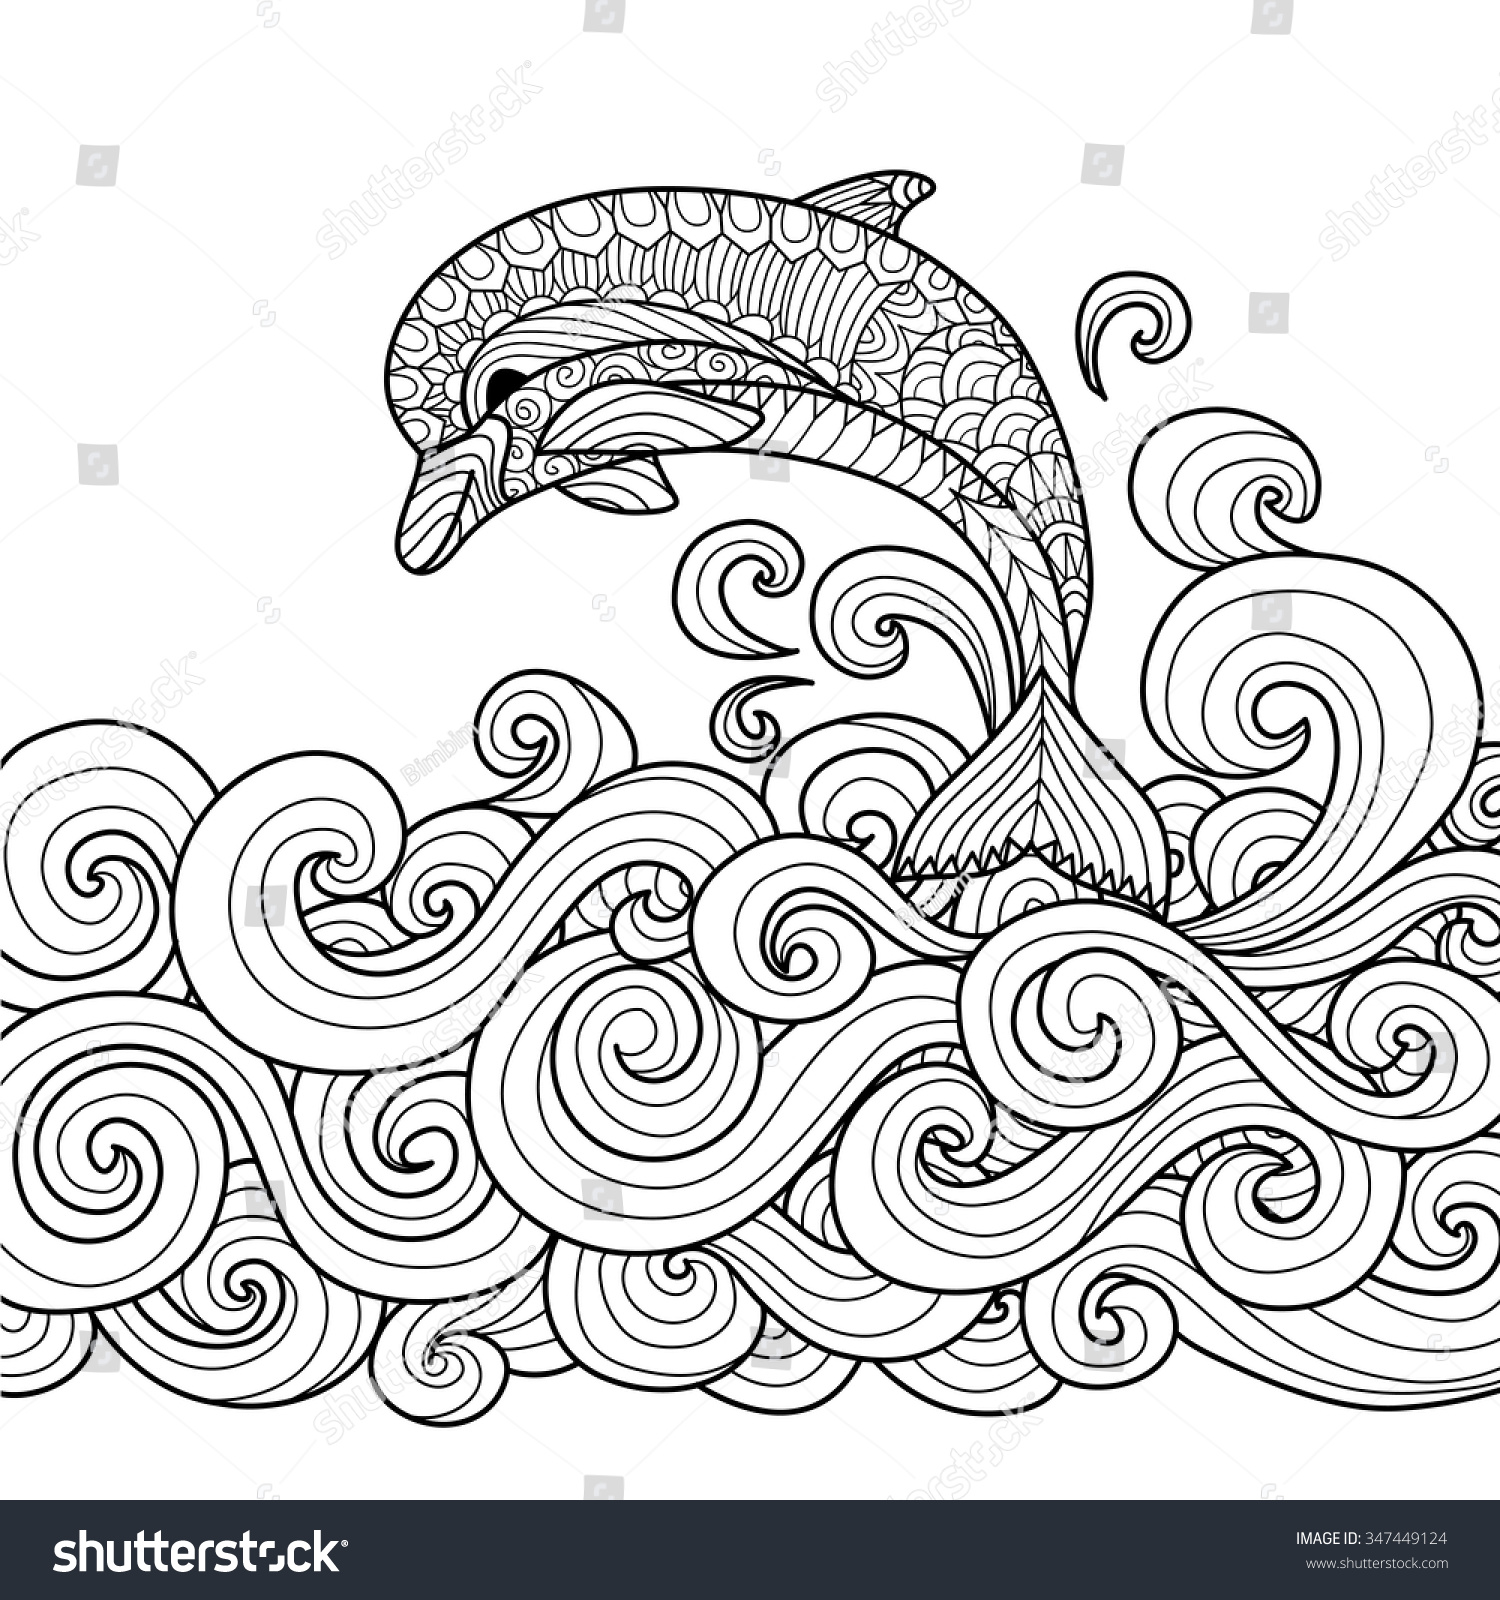 water animals clipart black and white